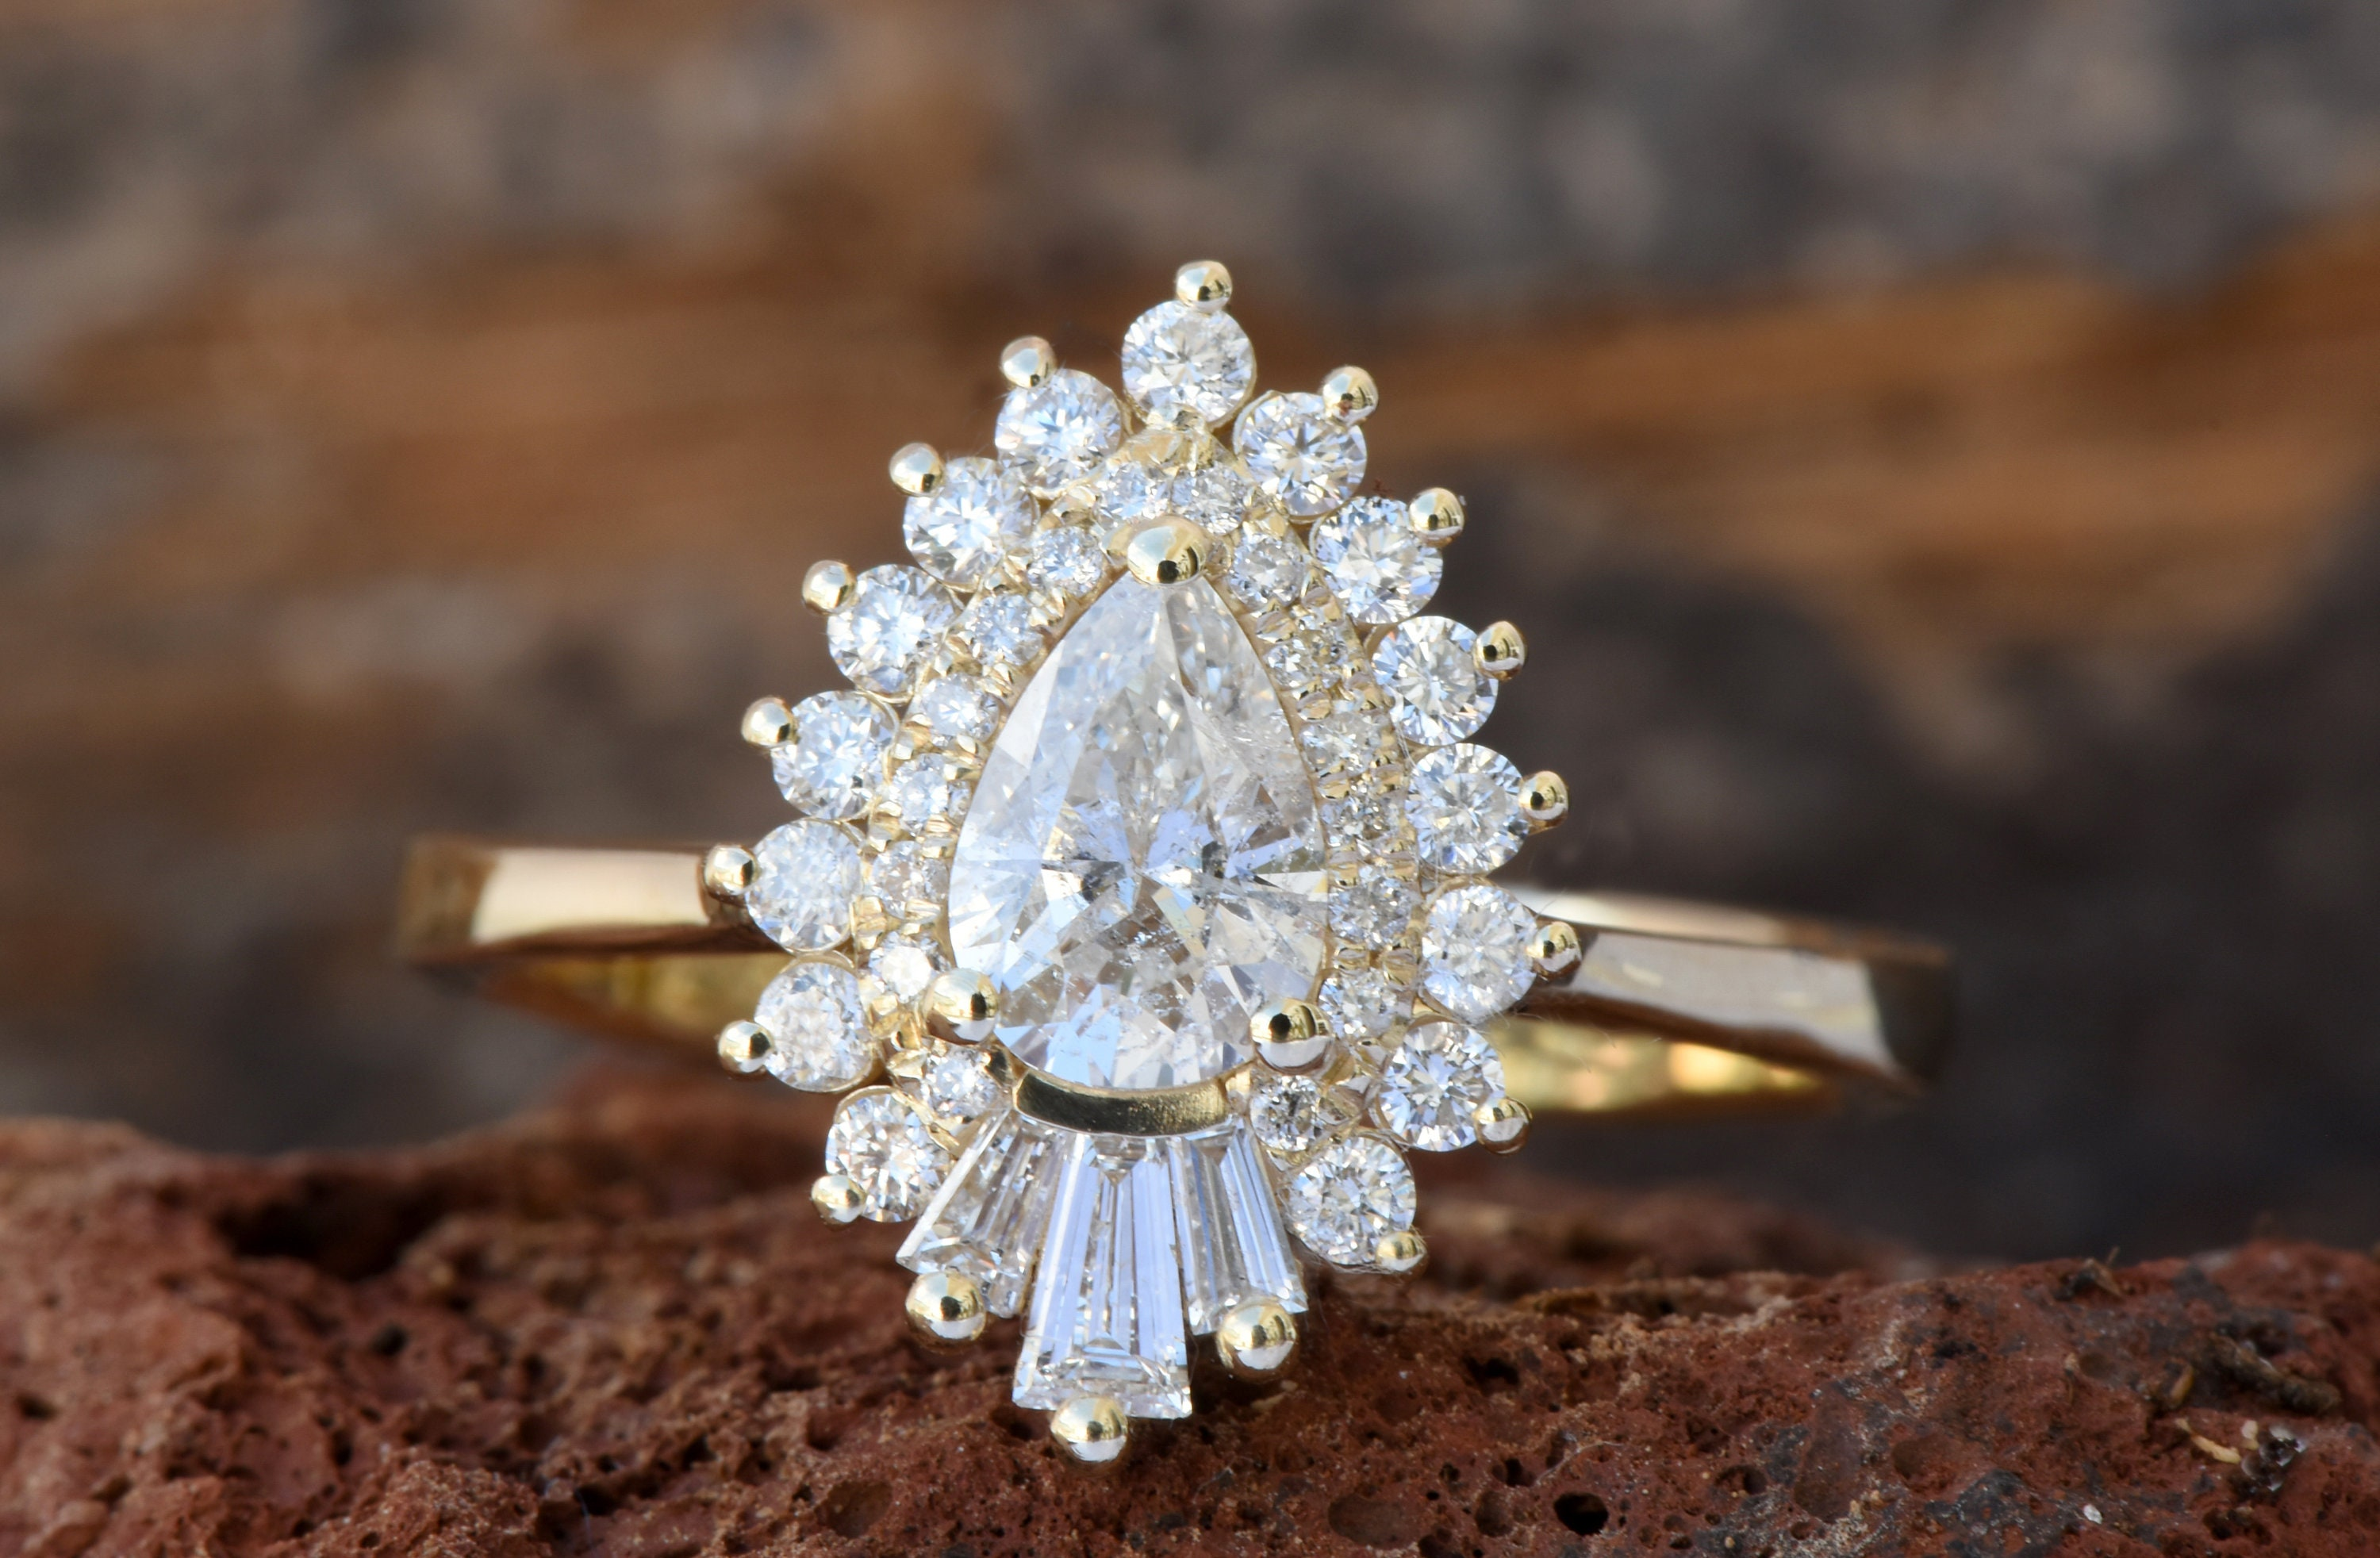 engagement carat the vee emily b all wedding in stunner yellow ring pear triplett paired set shaped textured with r diamond gold solitaire jewelry